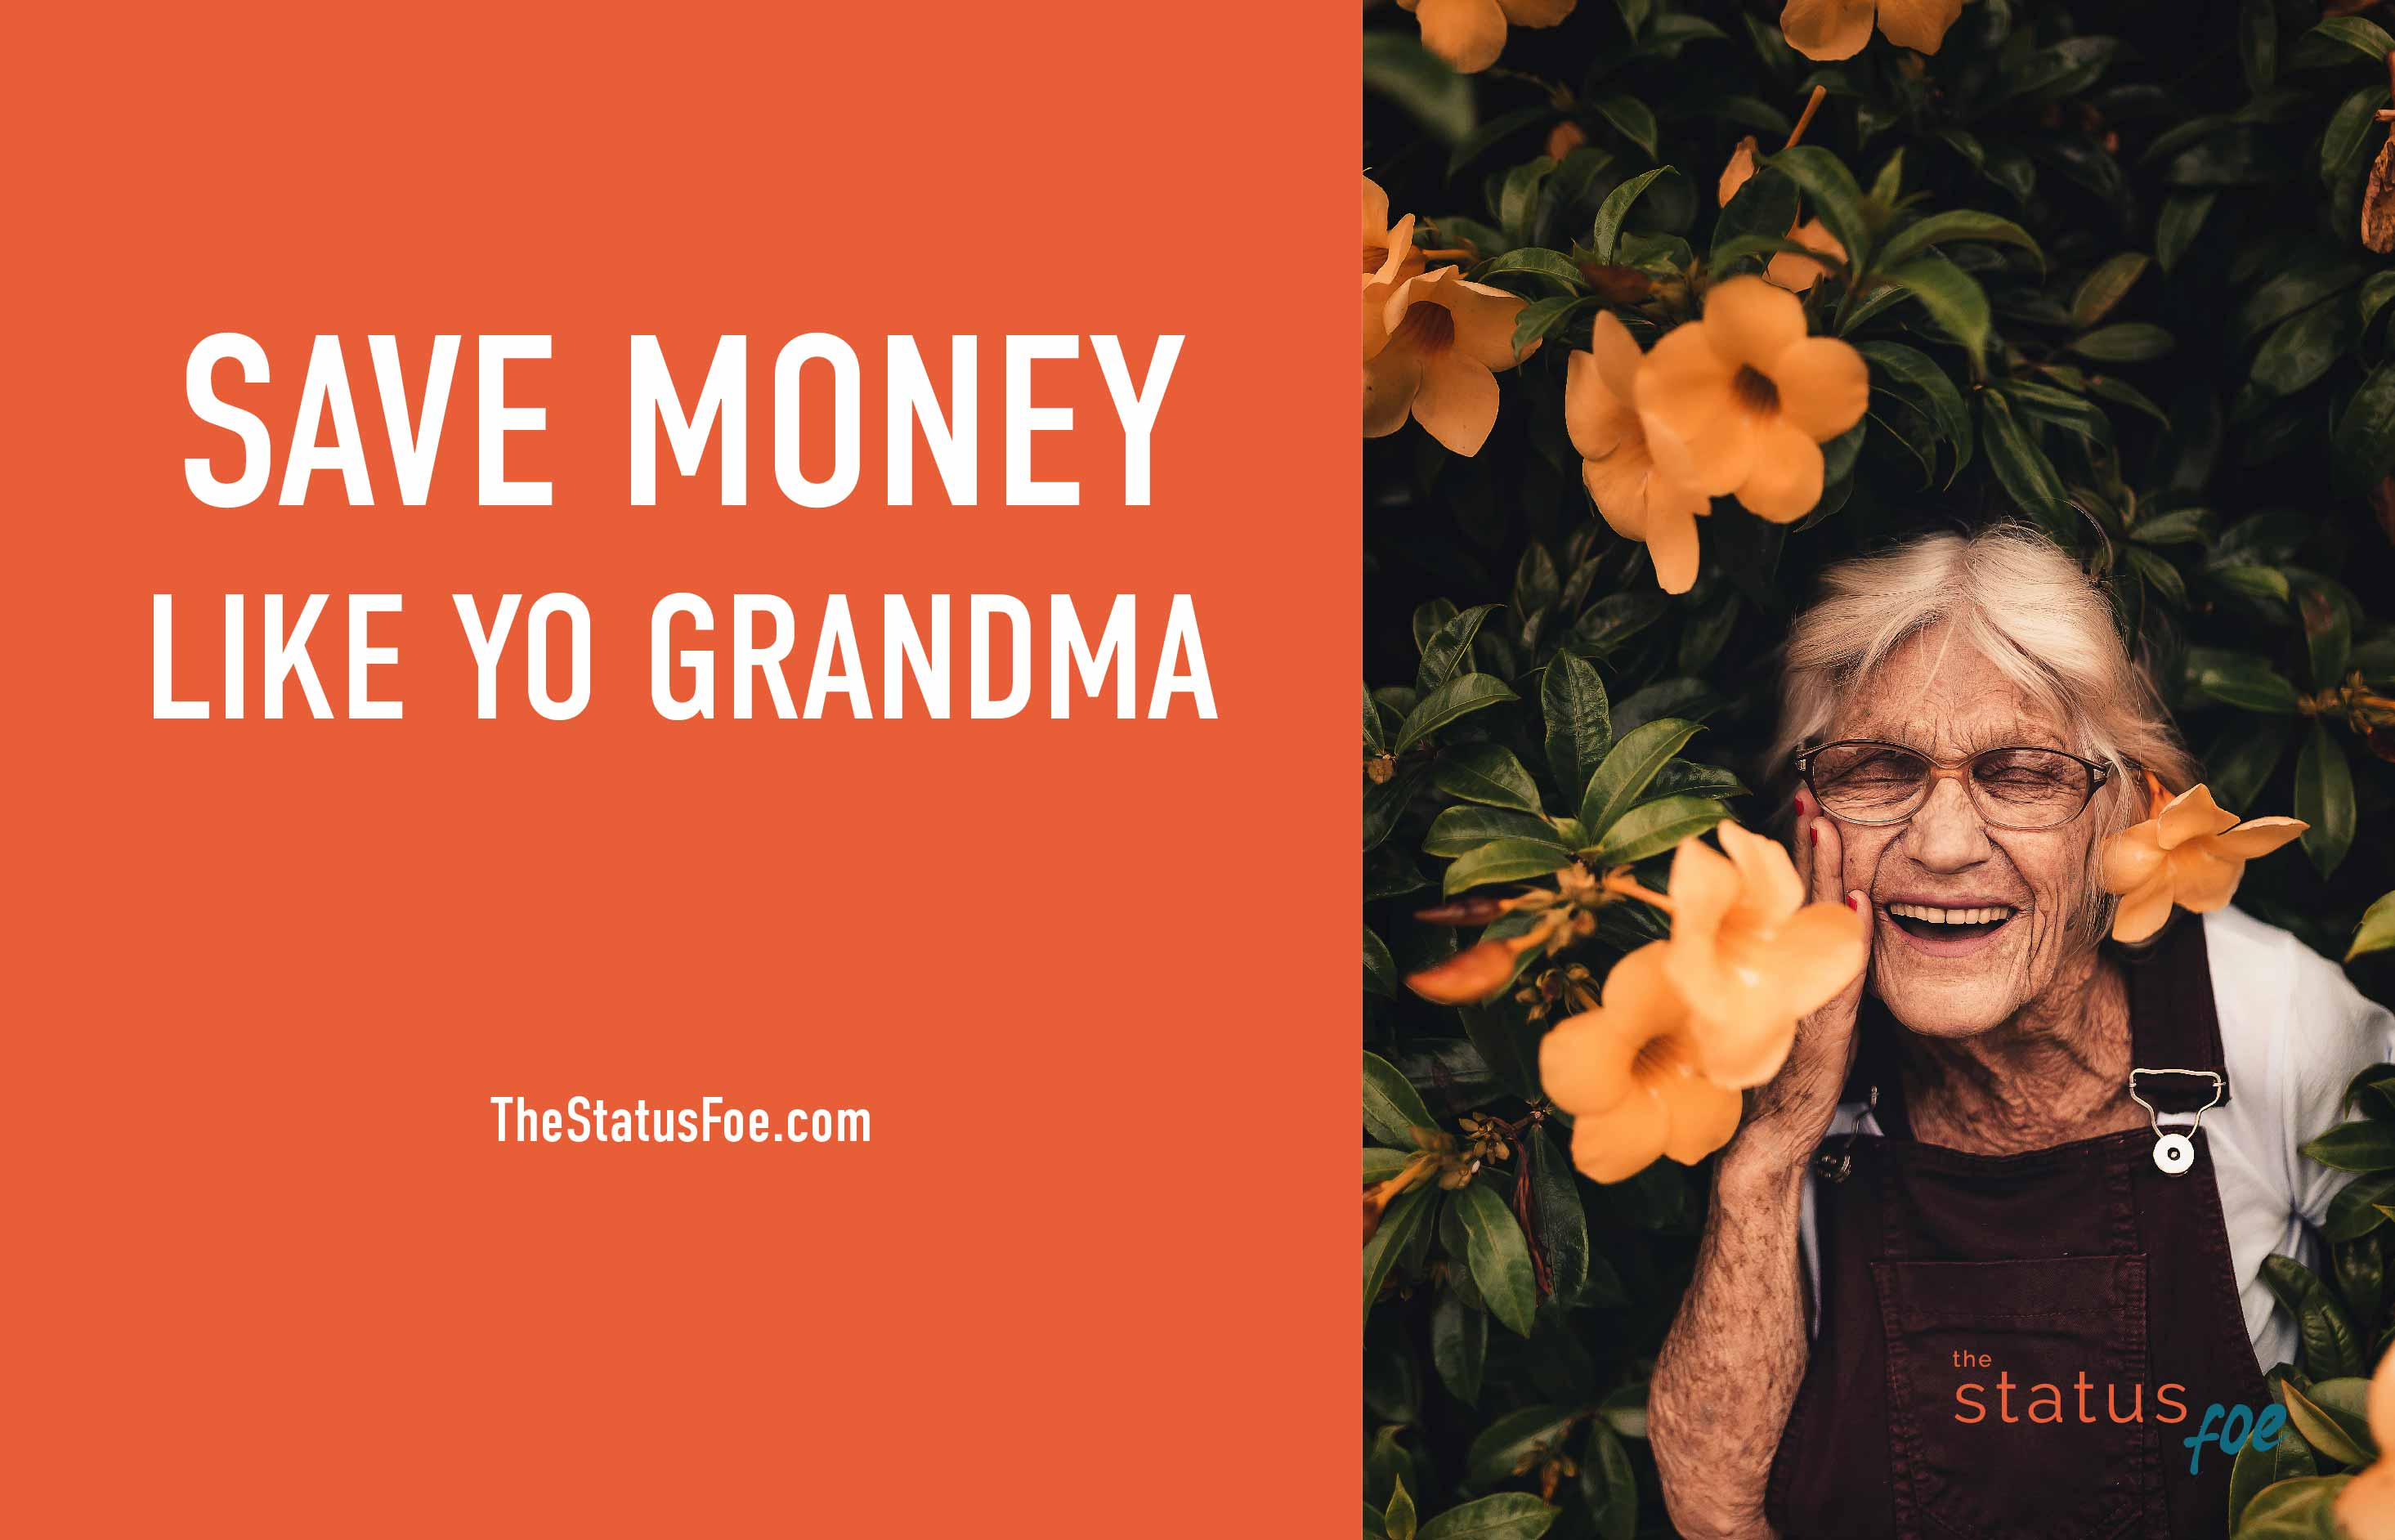 Save Money like yo Grandma.